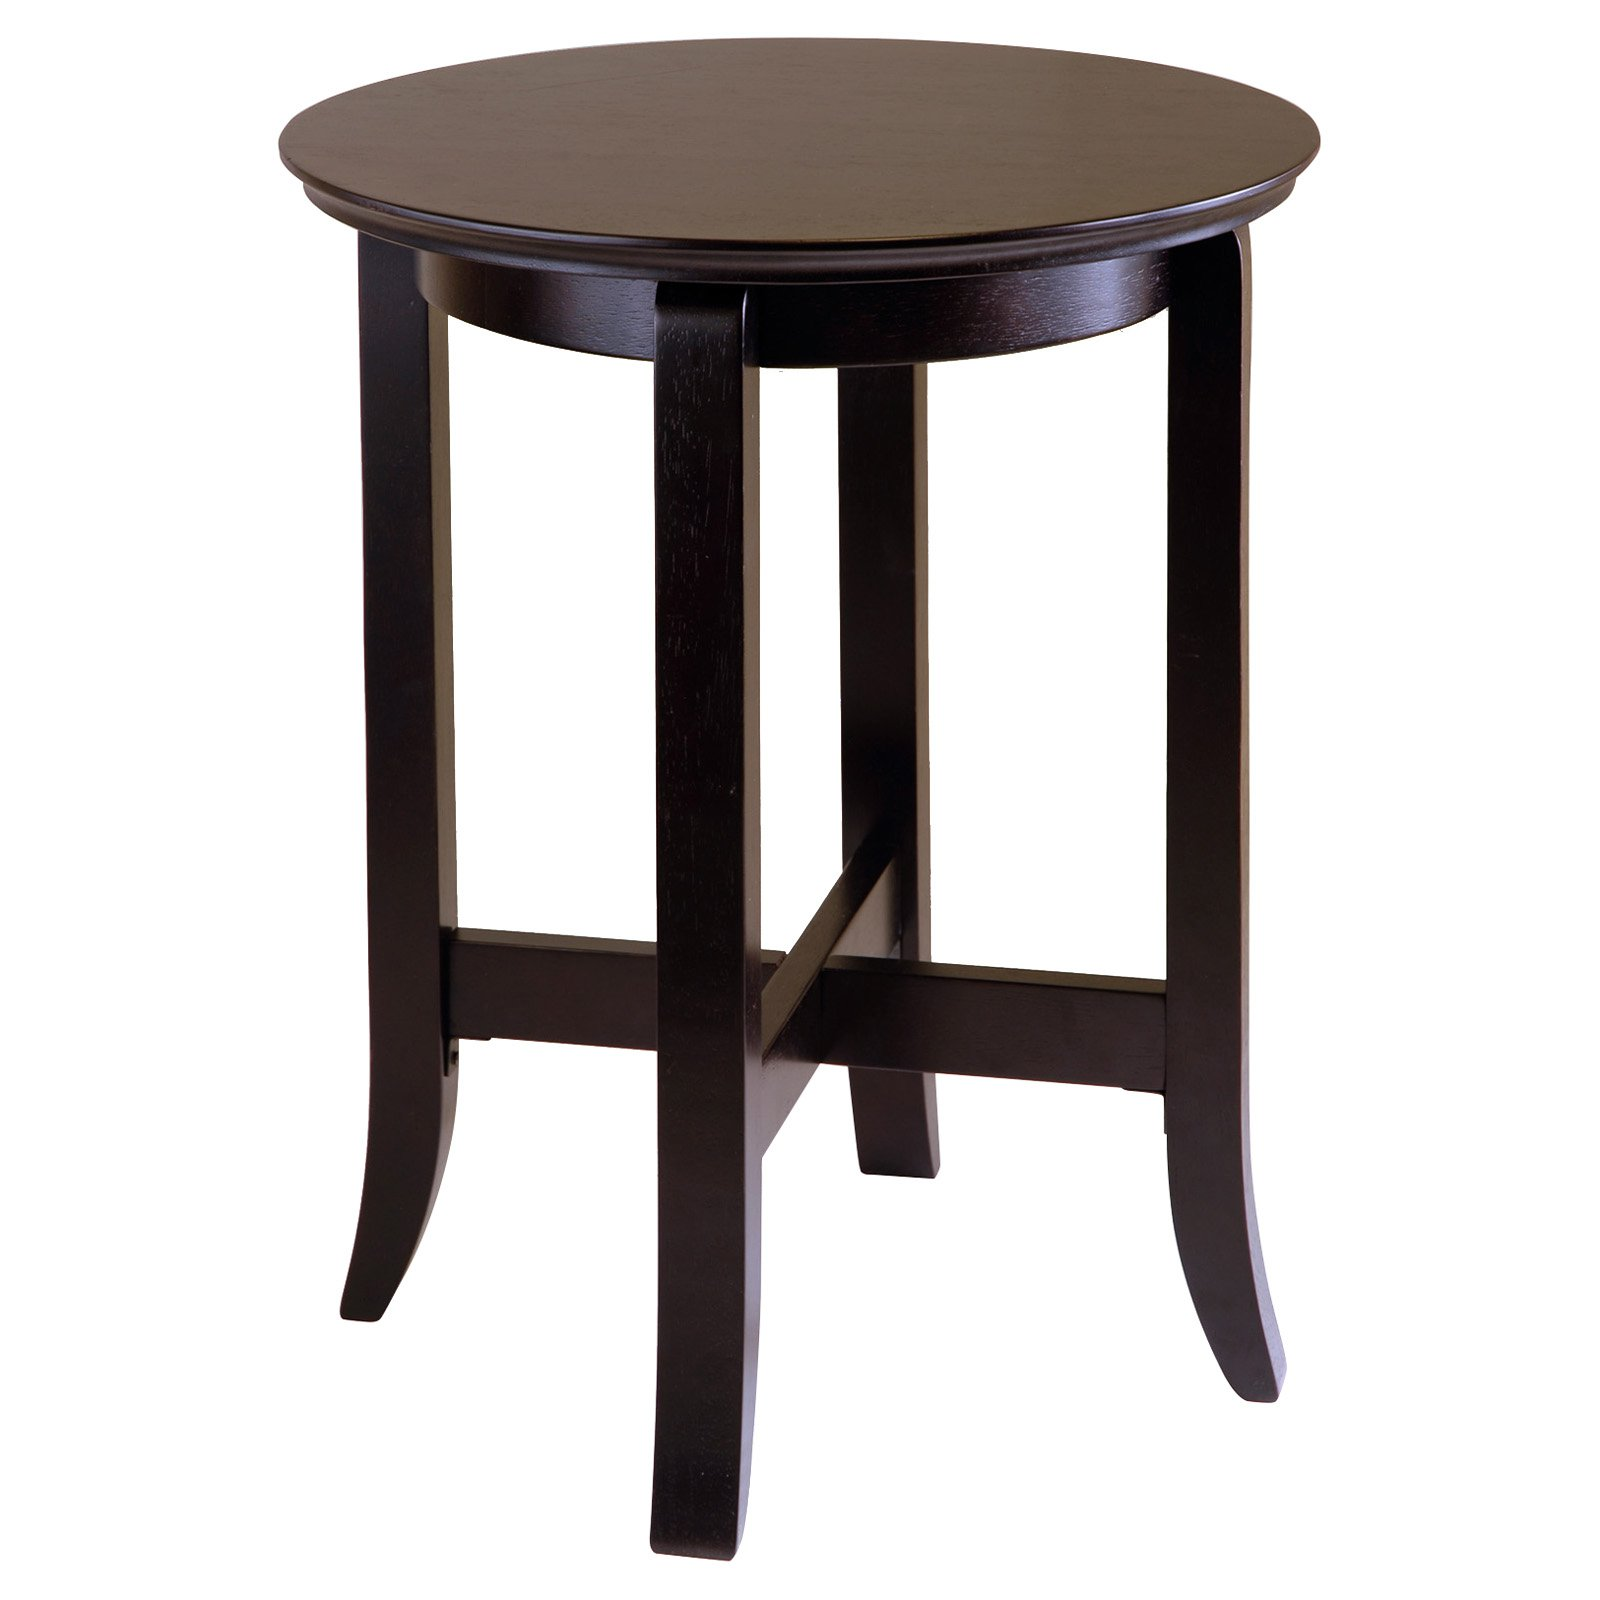 winsome wood toby round accent table espresso finish hairpin legs cordless lamps with shade small mirror butler specialty company pier one imports outdoor furniture tiffany tulip